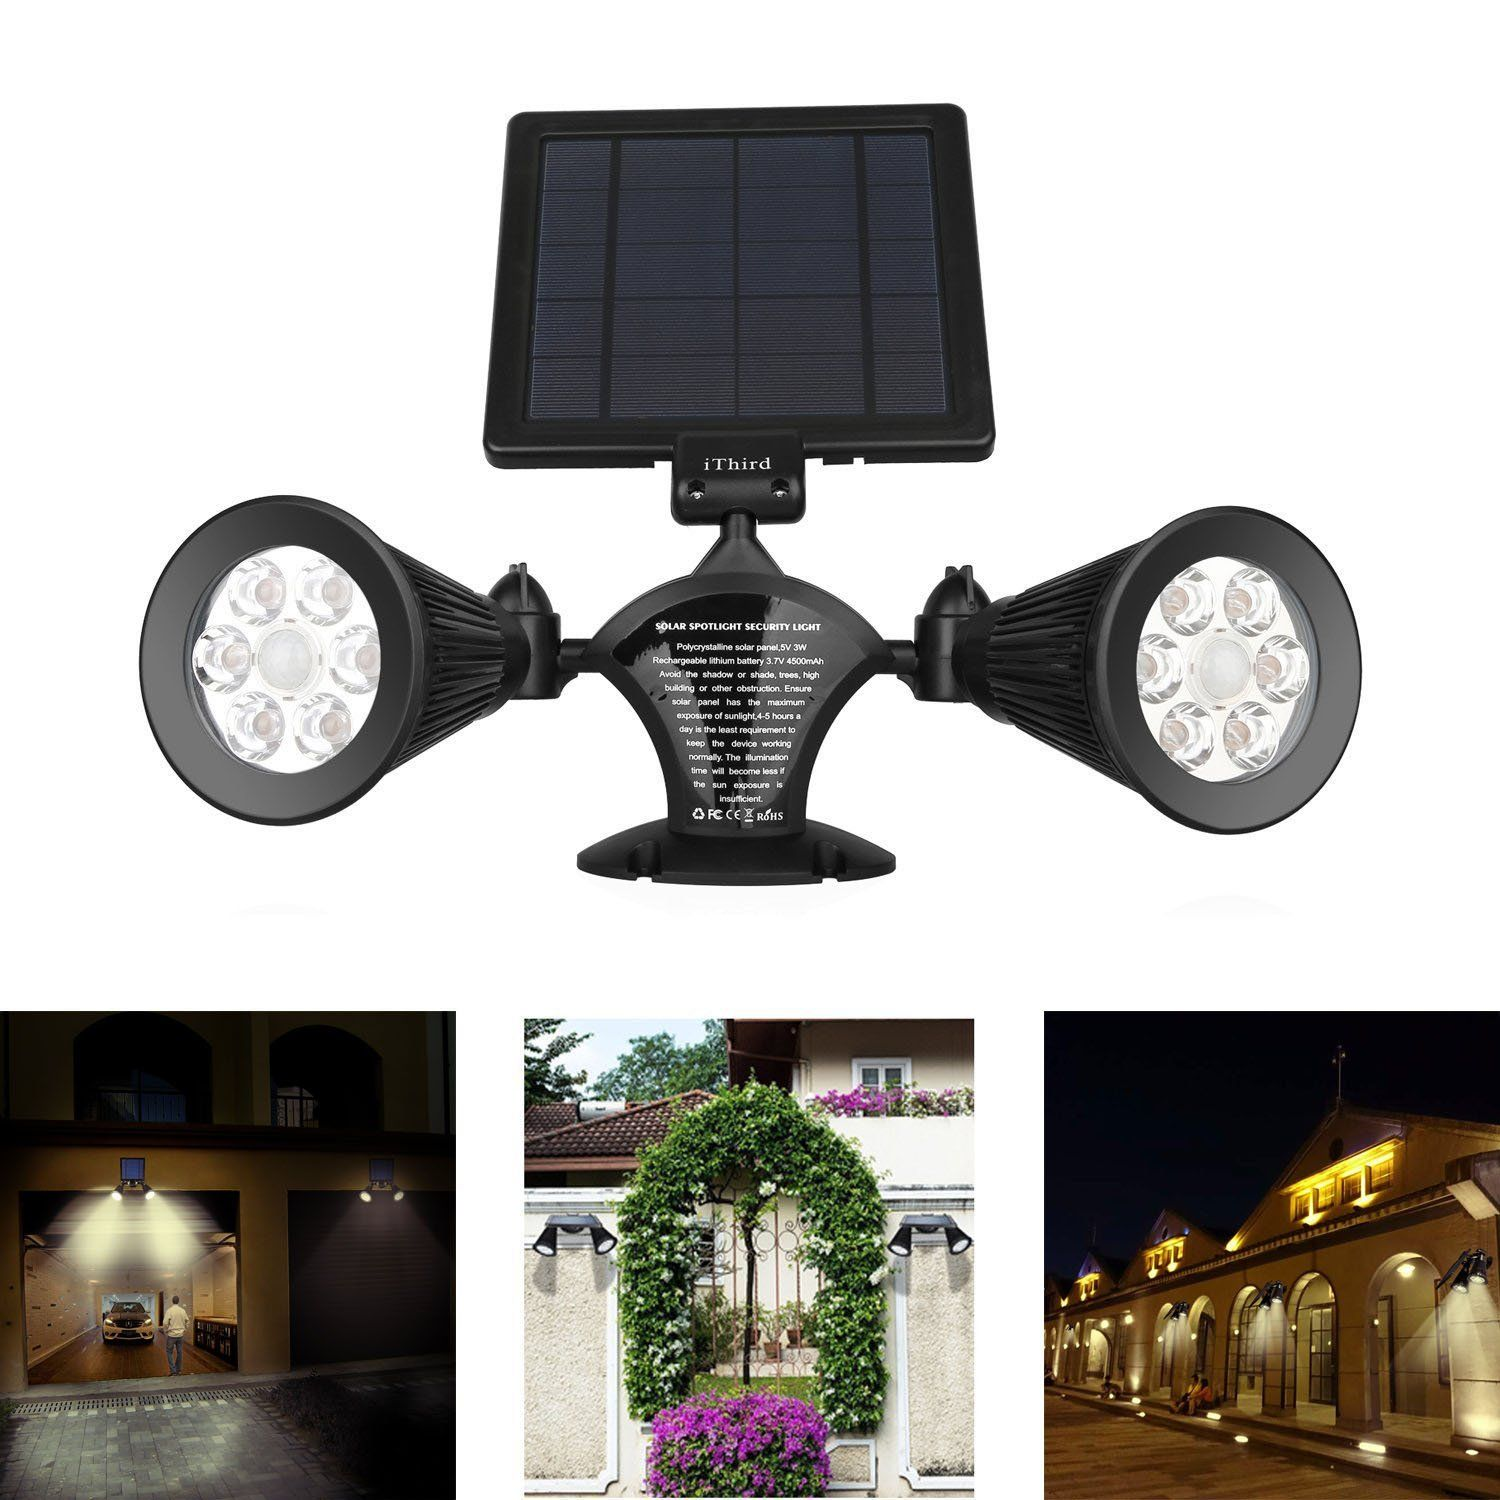 Solar lights outdoor motion sensor ithird 12 led 600lm solar solar lights outdoor motion sensor ithird 12 led 600lm solar powered security lights wall mounted aloadofball Gallery